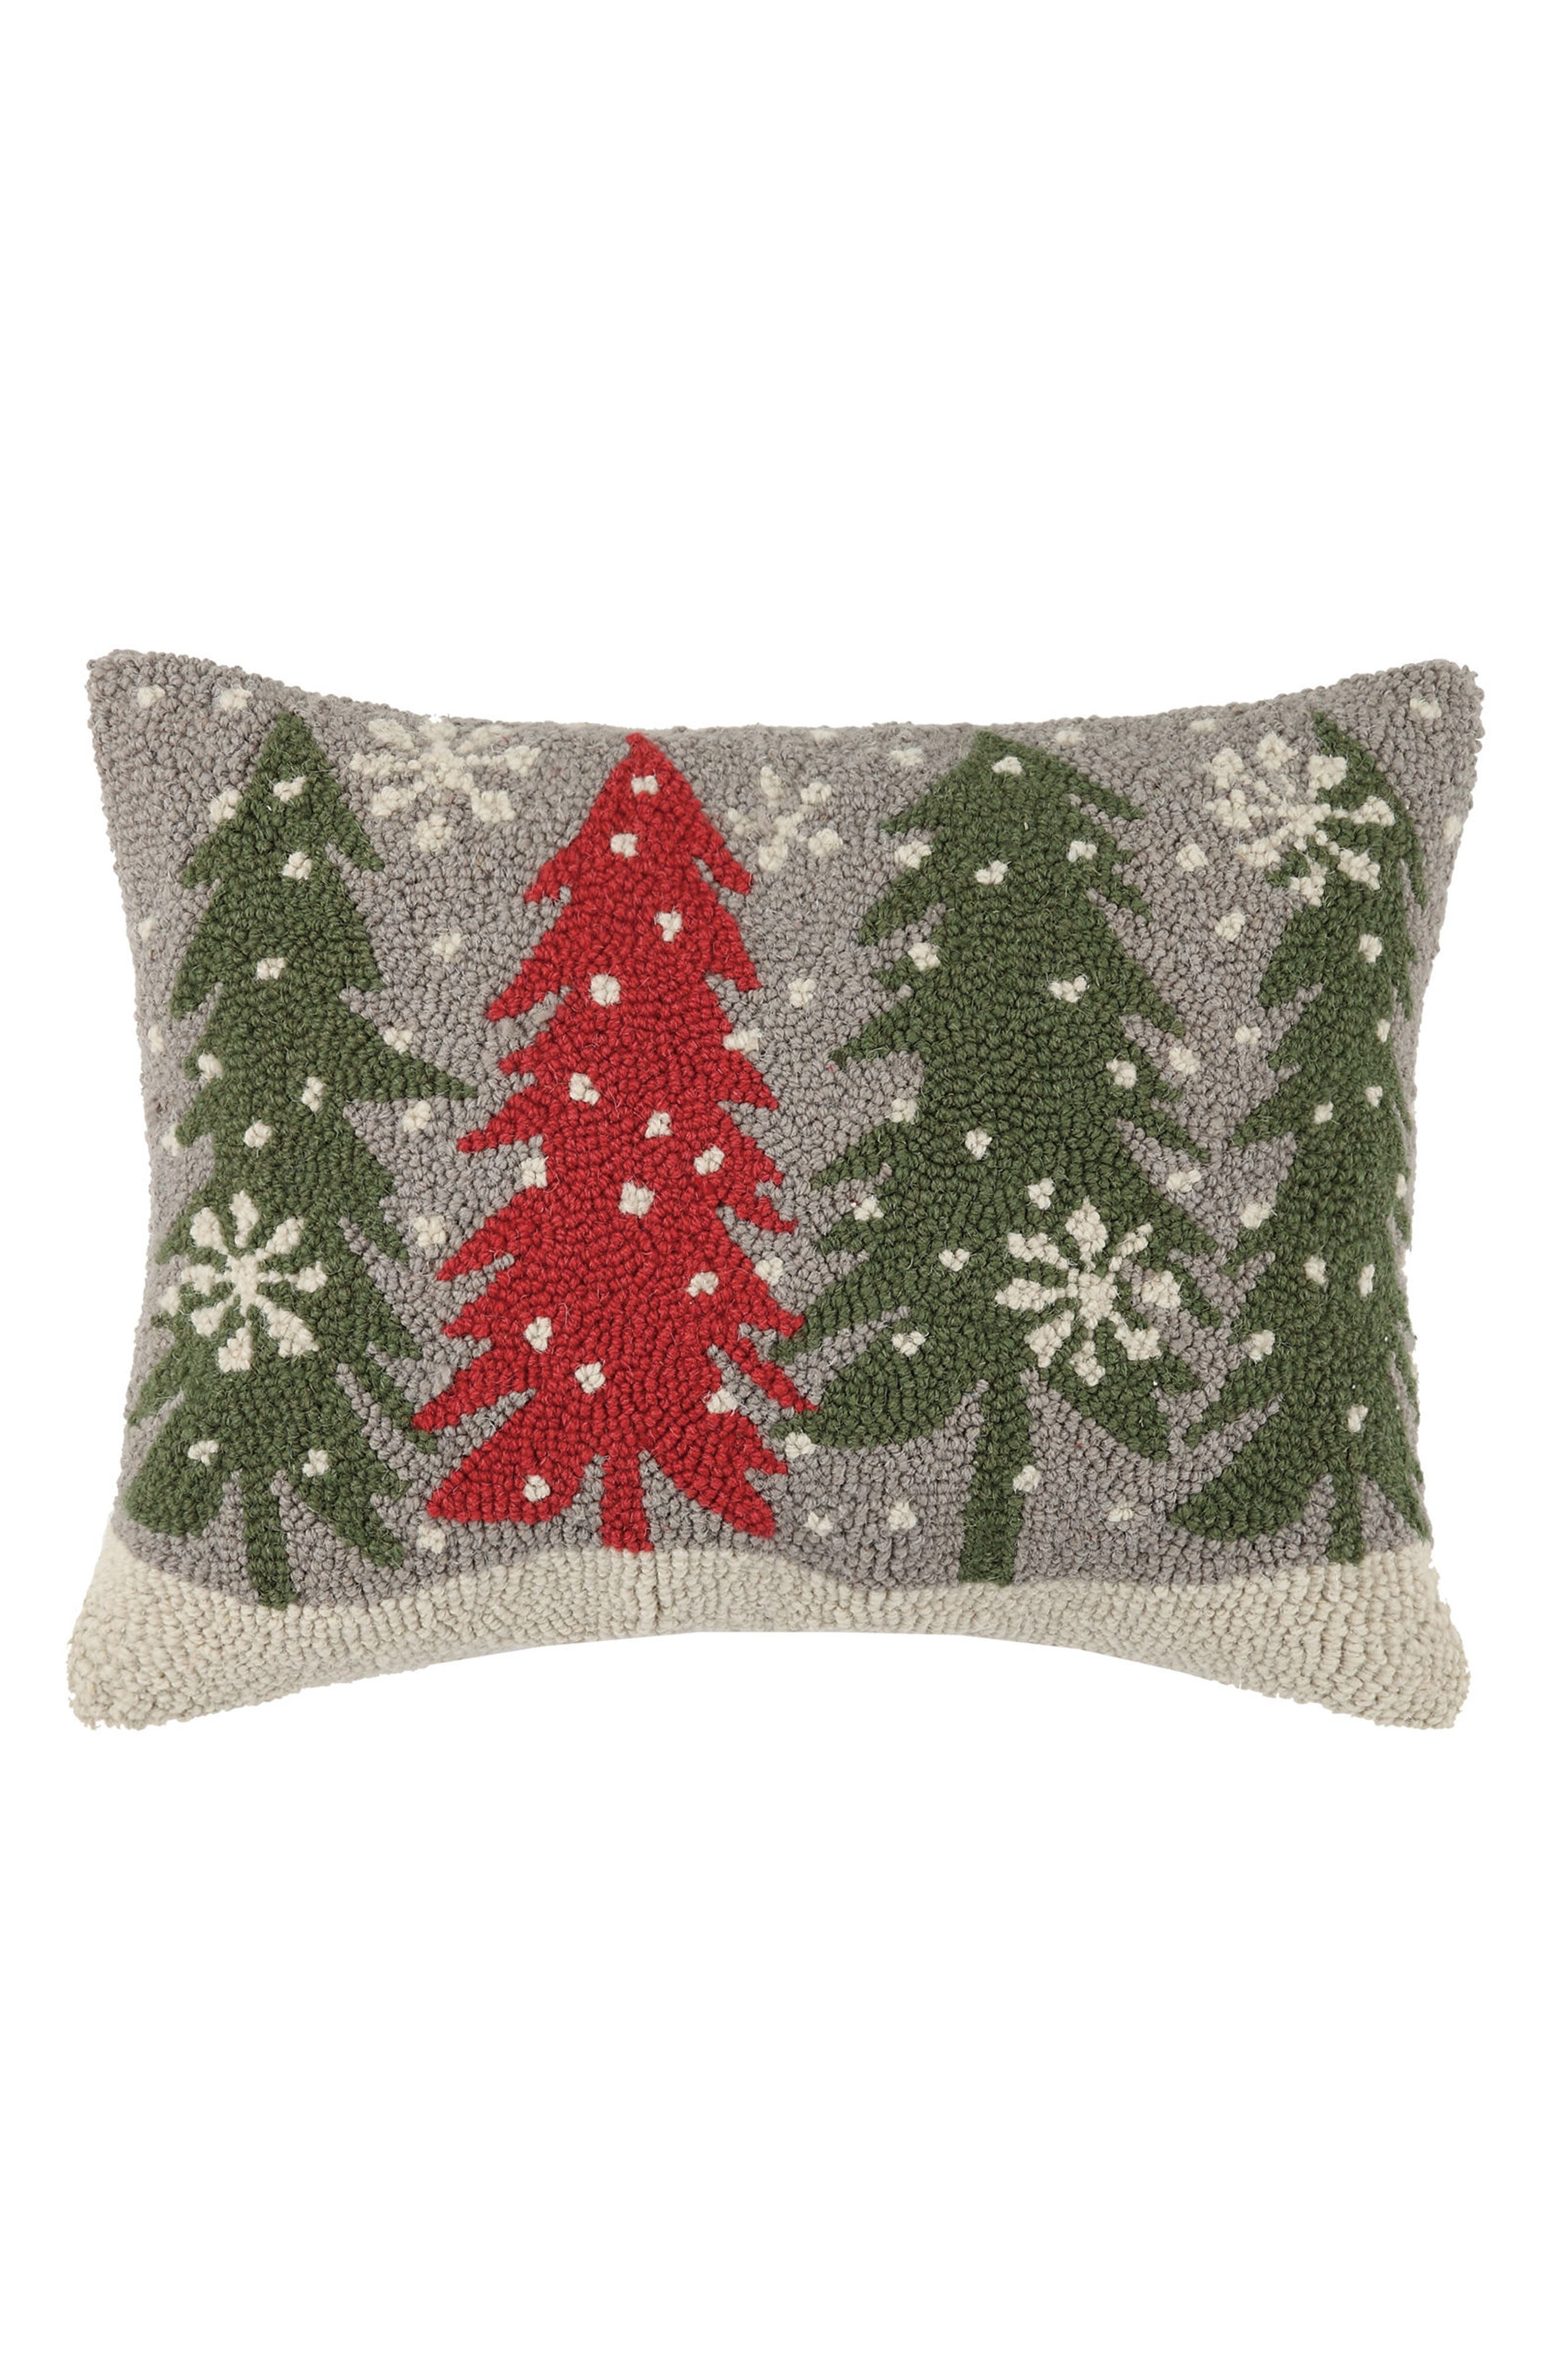 Peking Handicraft Trees with Snowflakes Hooked Accent Pillow